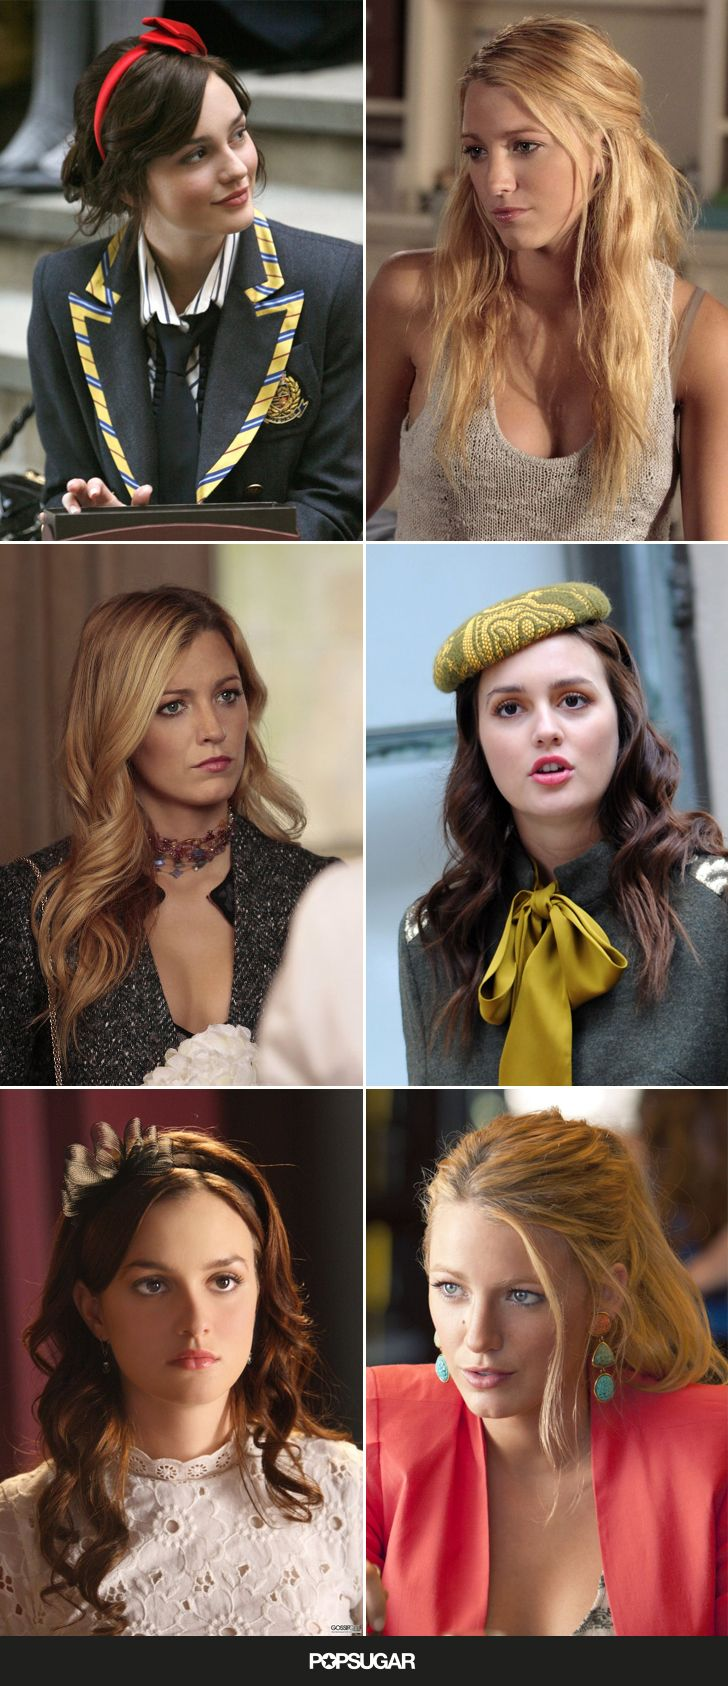 Gossip Girl hairstyles to copy - From the first headband to the last, the iconic hairstyles are all here.